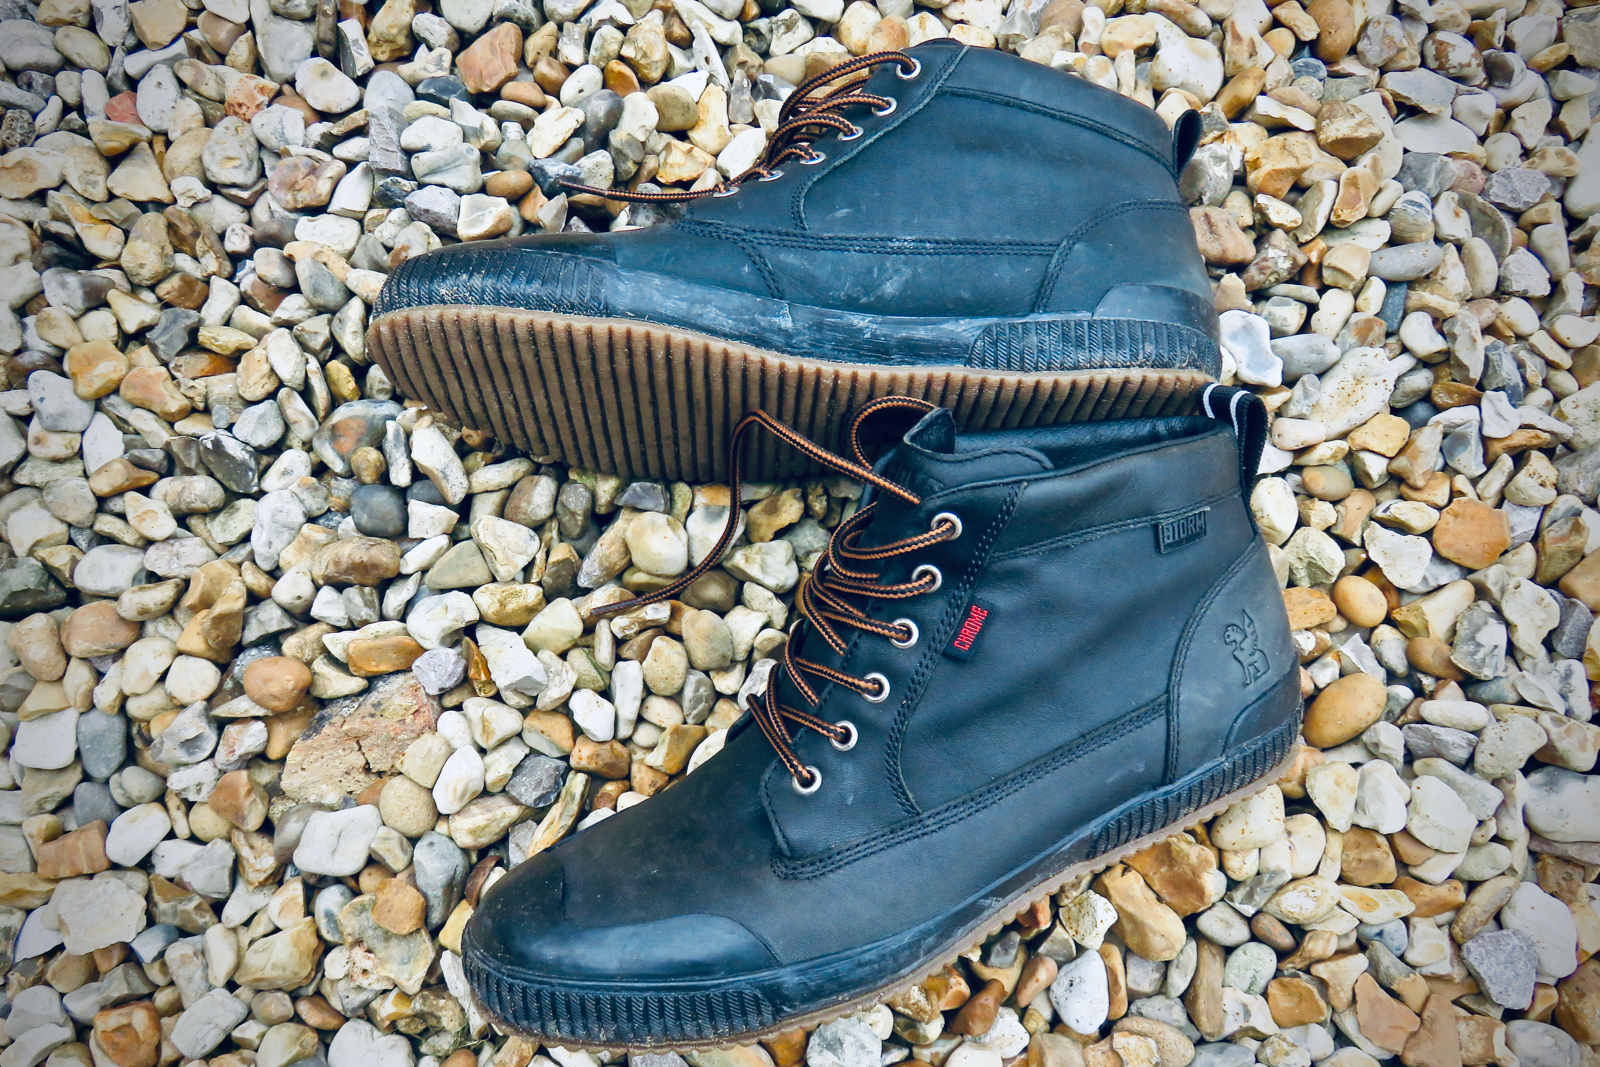 Chrome Storm 415 Workboot Review